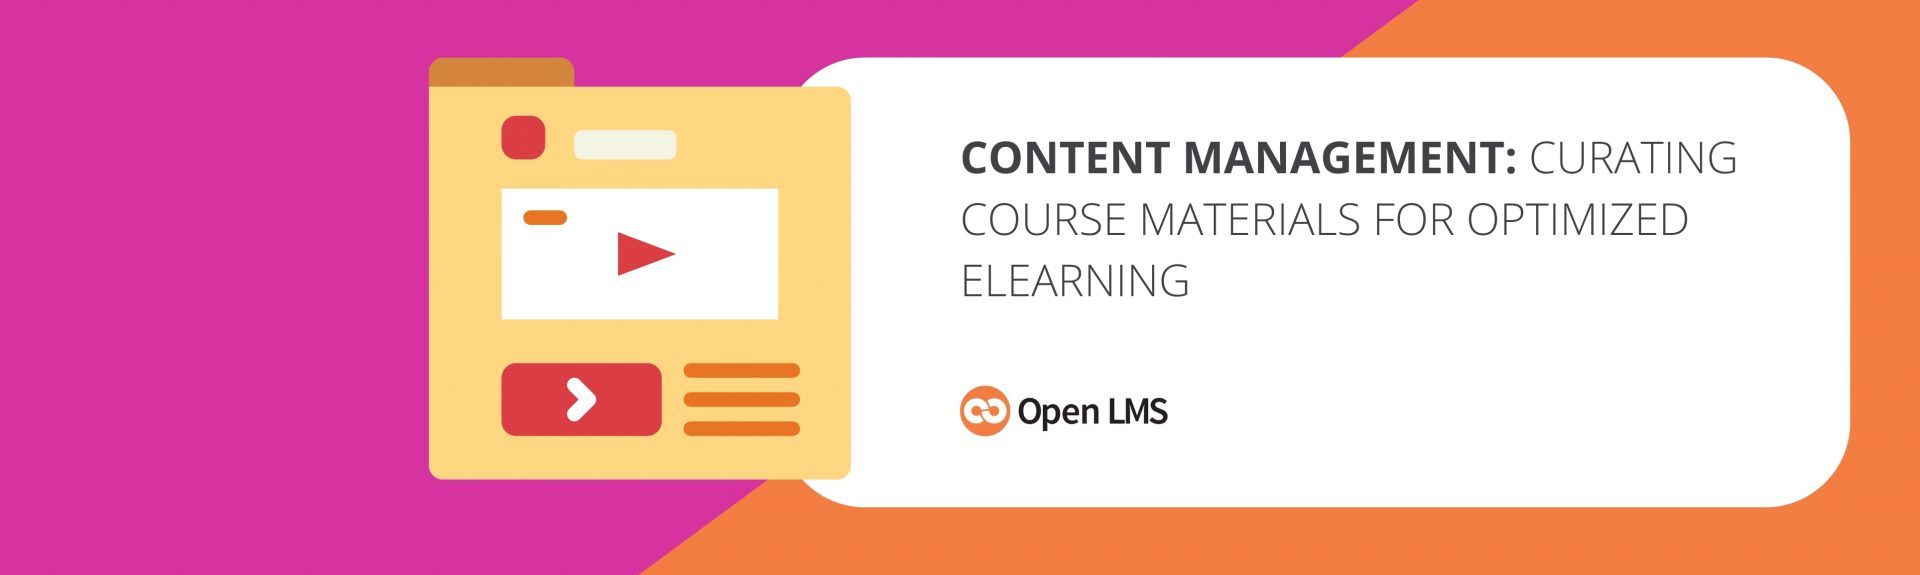 Content Management: Curating Course Materials for Optimized eLearning